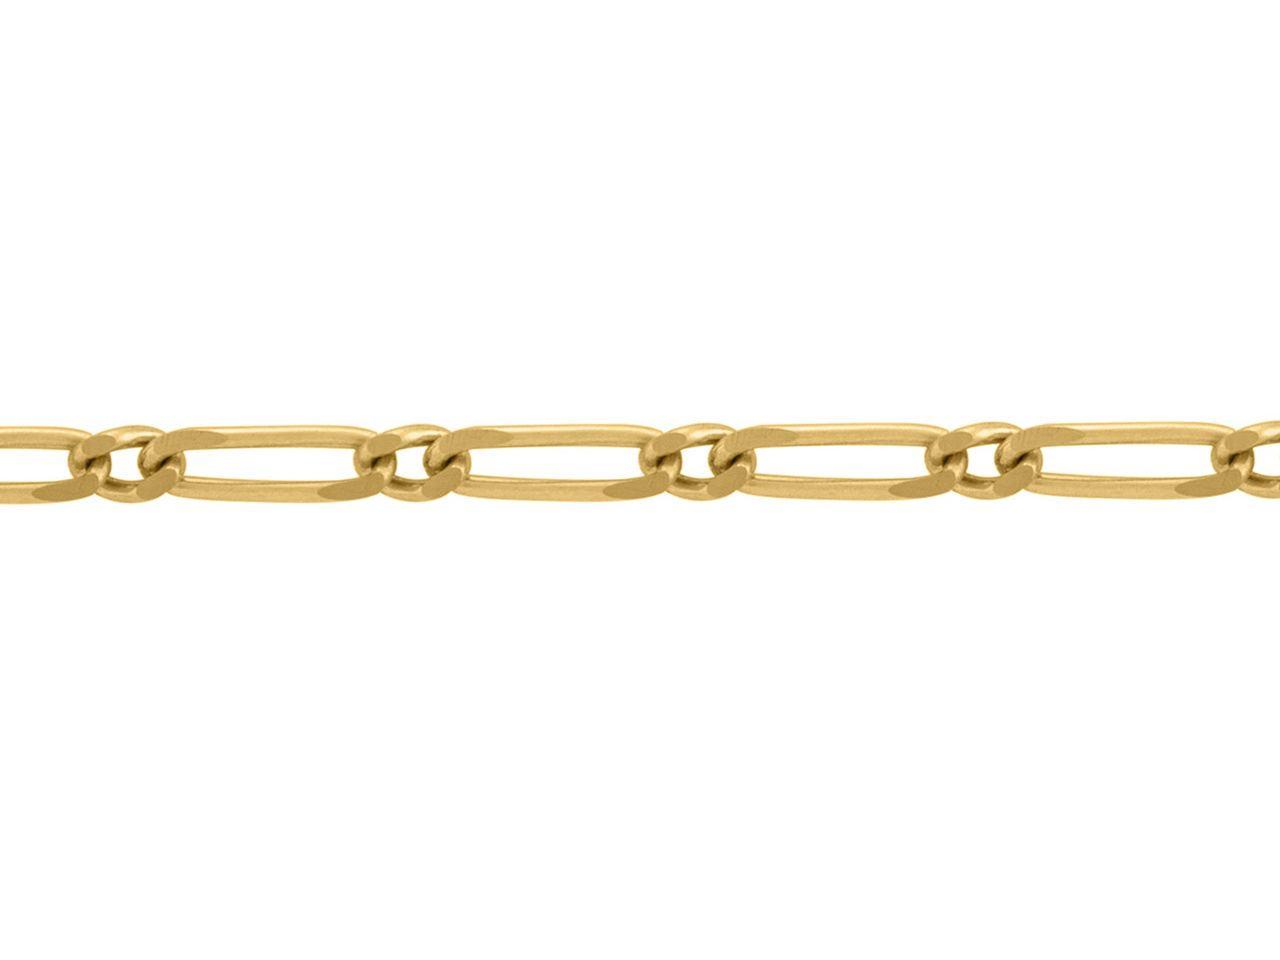 Chaine Figaro alternée 1/1, 2,6 mm, Or jaune 18k. Réf. 00215